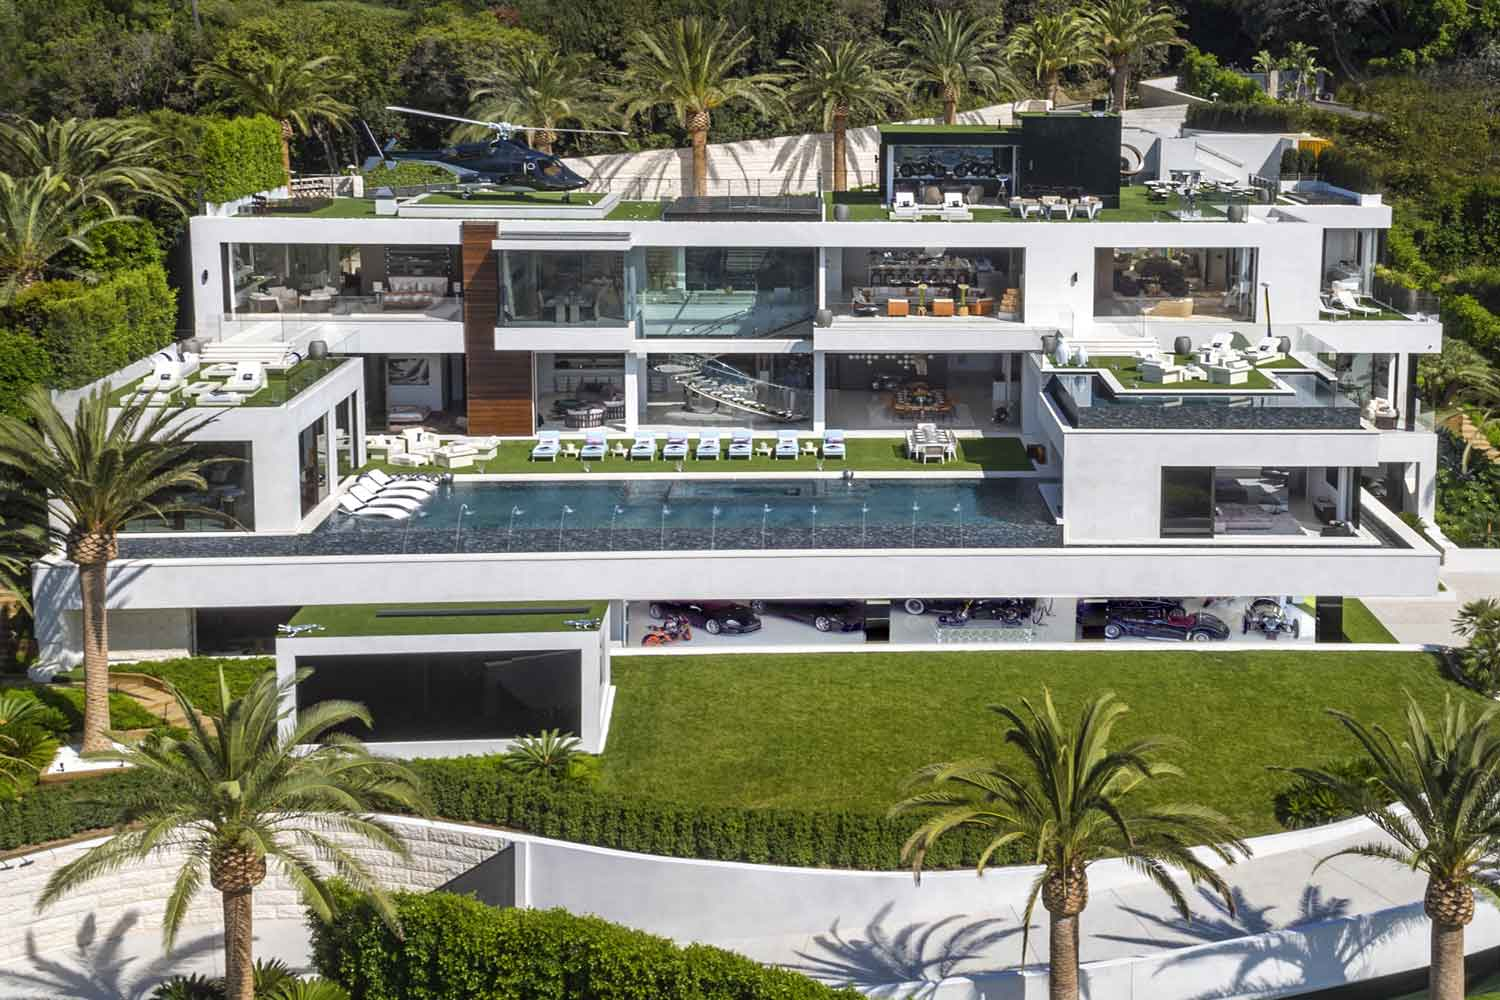 <b>Los Angeles, California</b><br/><i>12 Bedrooms, 38,000 sq. ft.</i><br/>Ultra-luxury spec home in Bel-Air